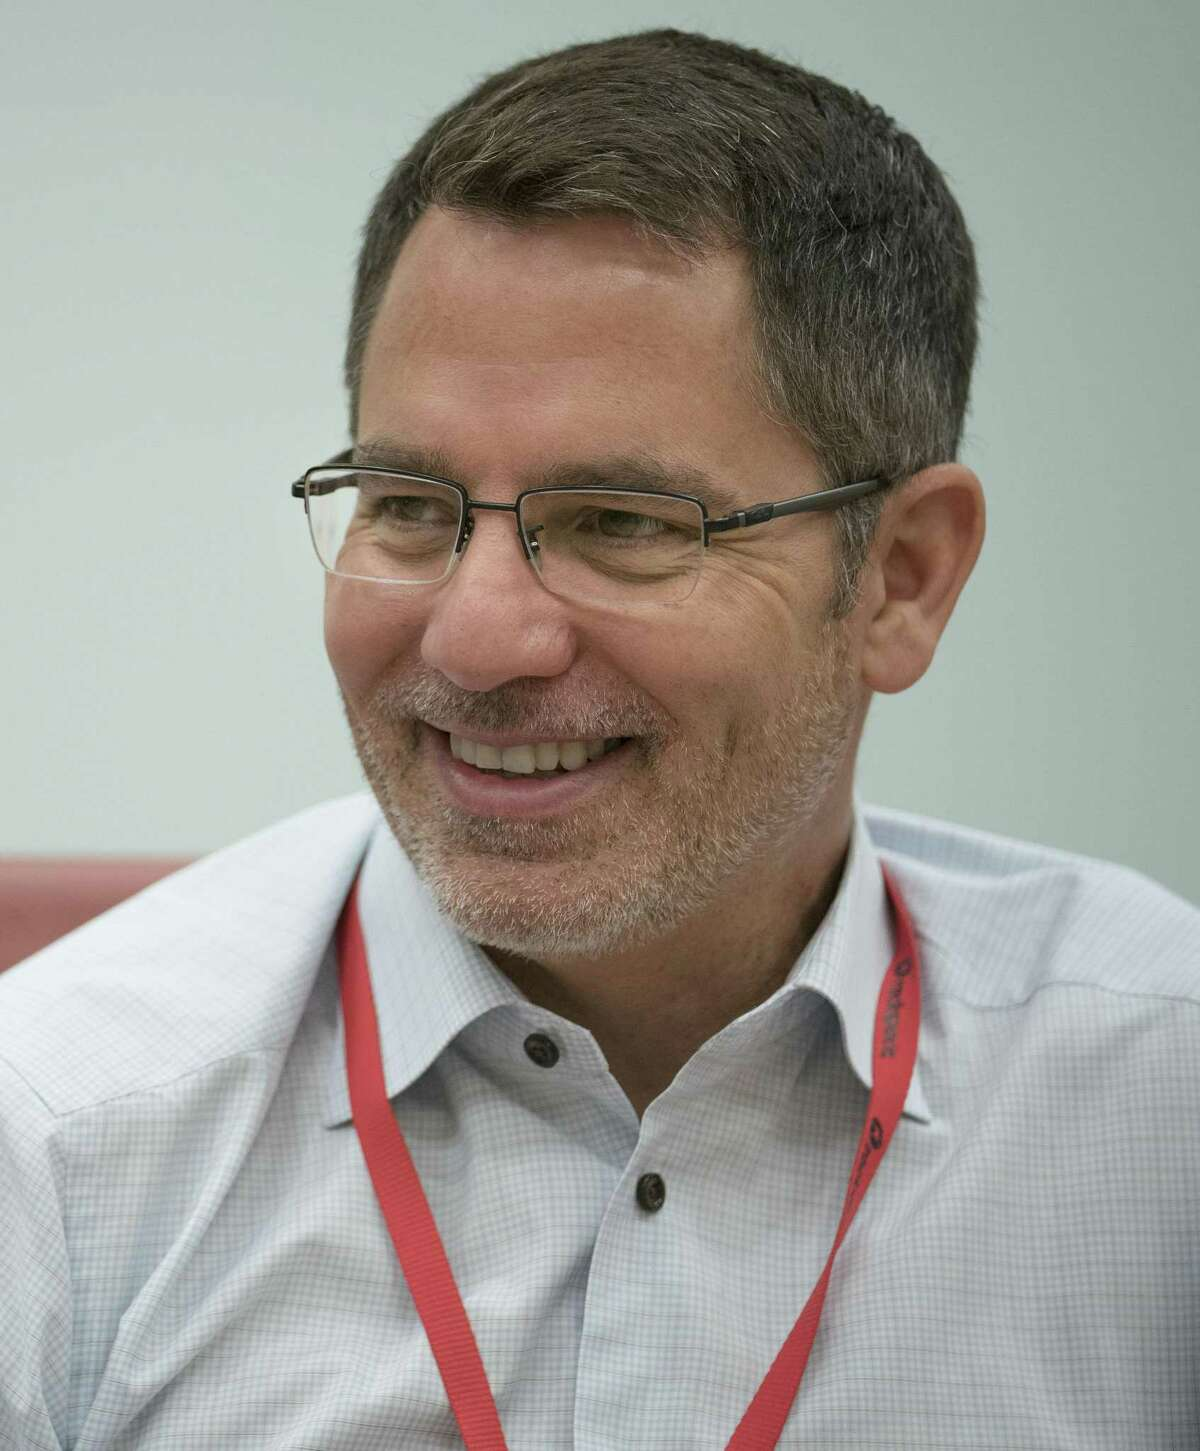 Since taking the helm at Rackspace in June 2017 Eazor has replaced the company's chief operations officer, chief financial officer, chief technology officer and appointed new heads of human resources and tech strategy. The company also laid off